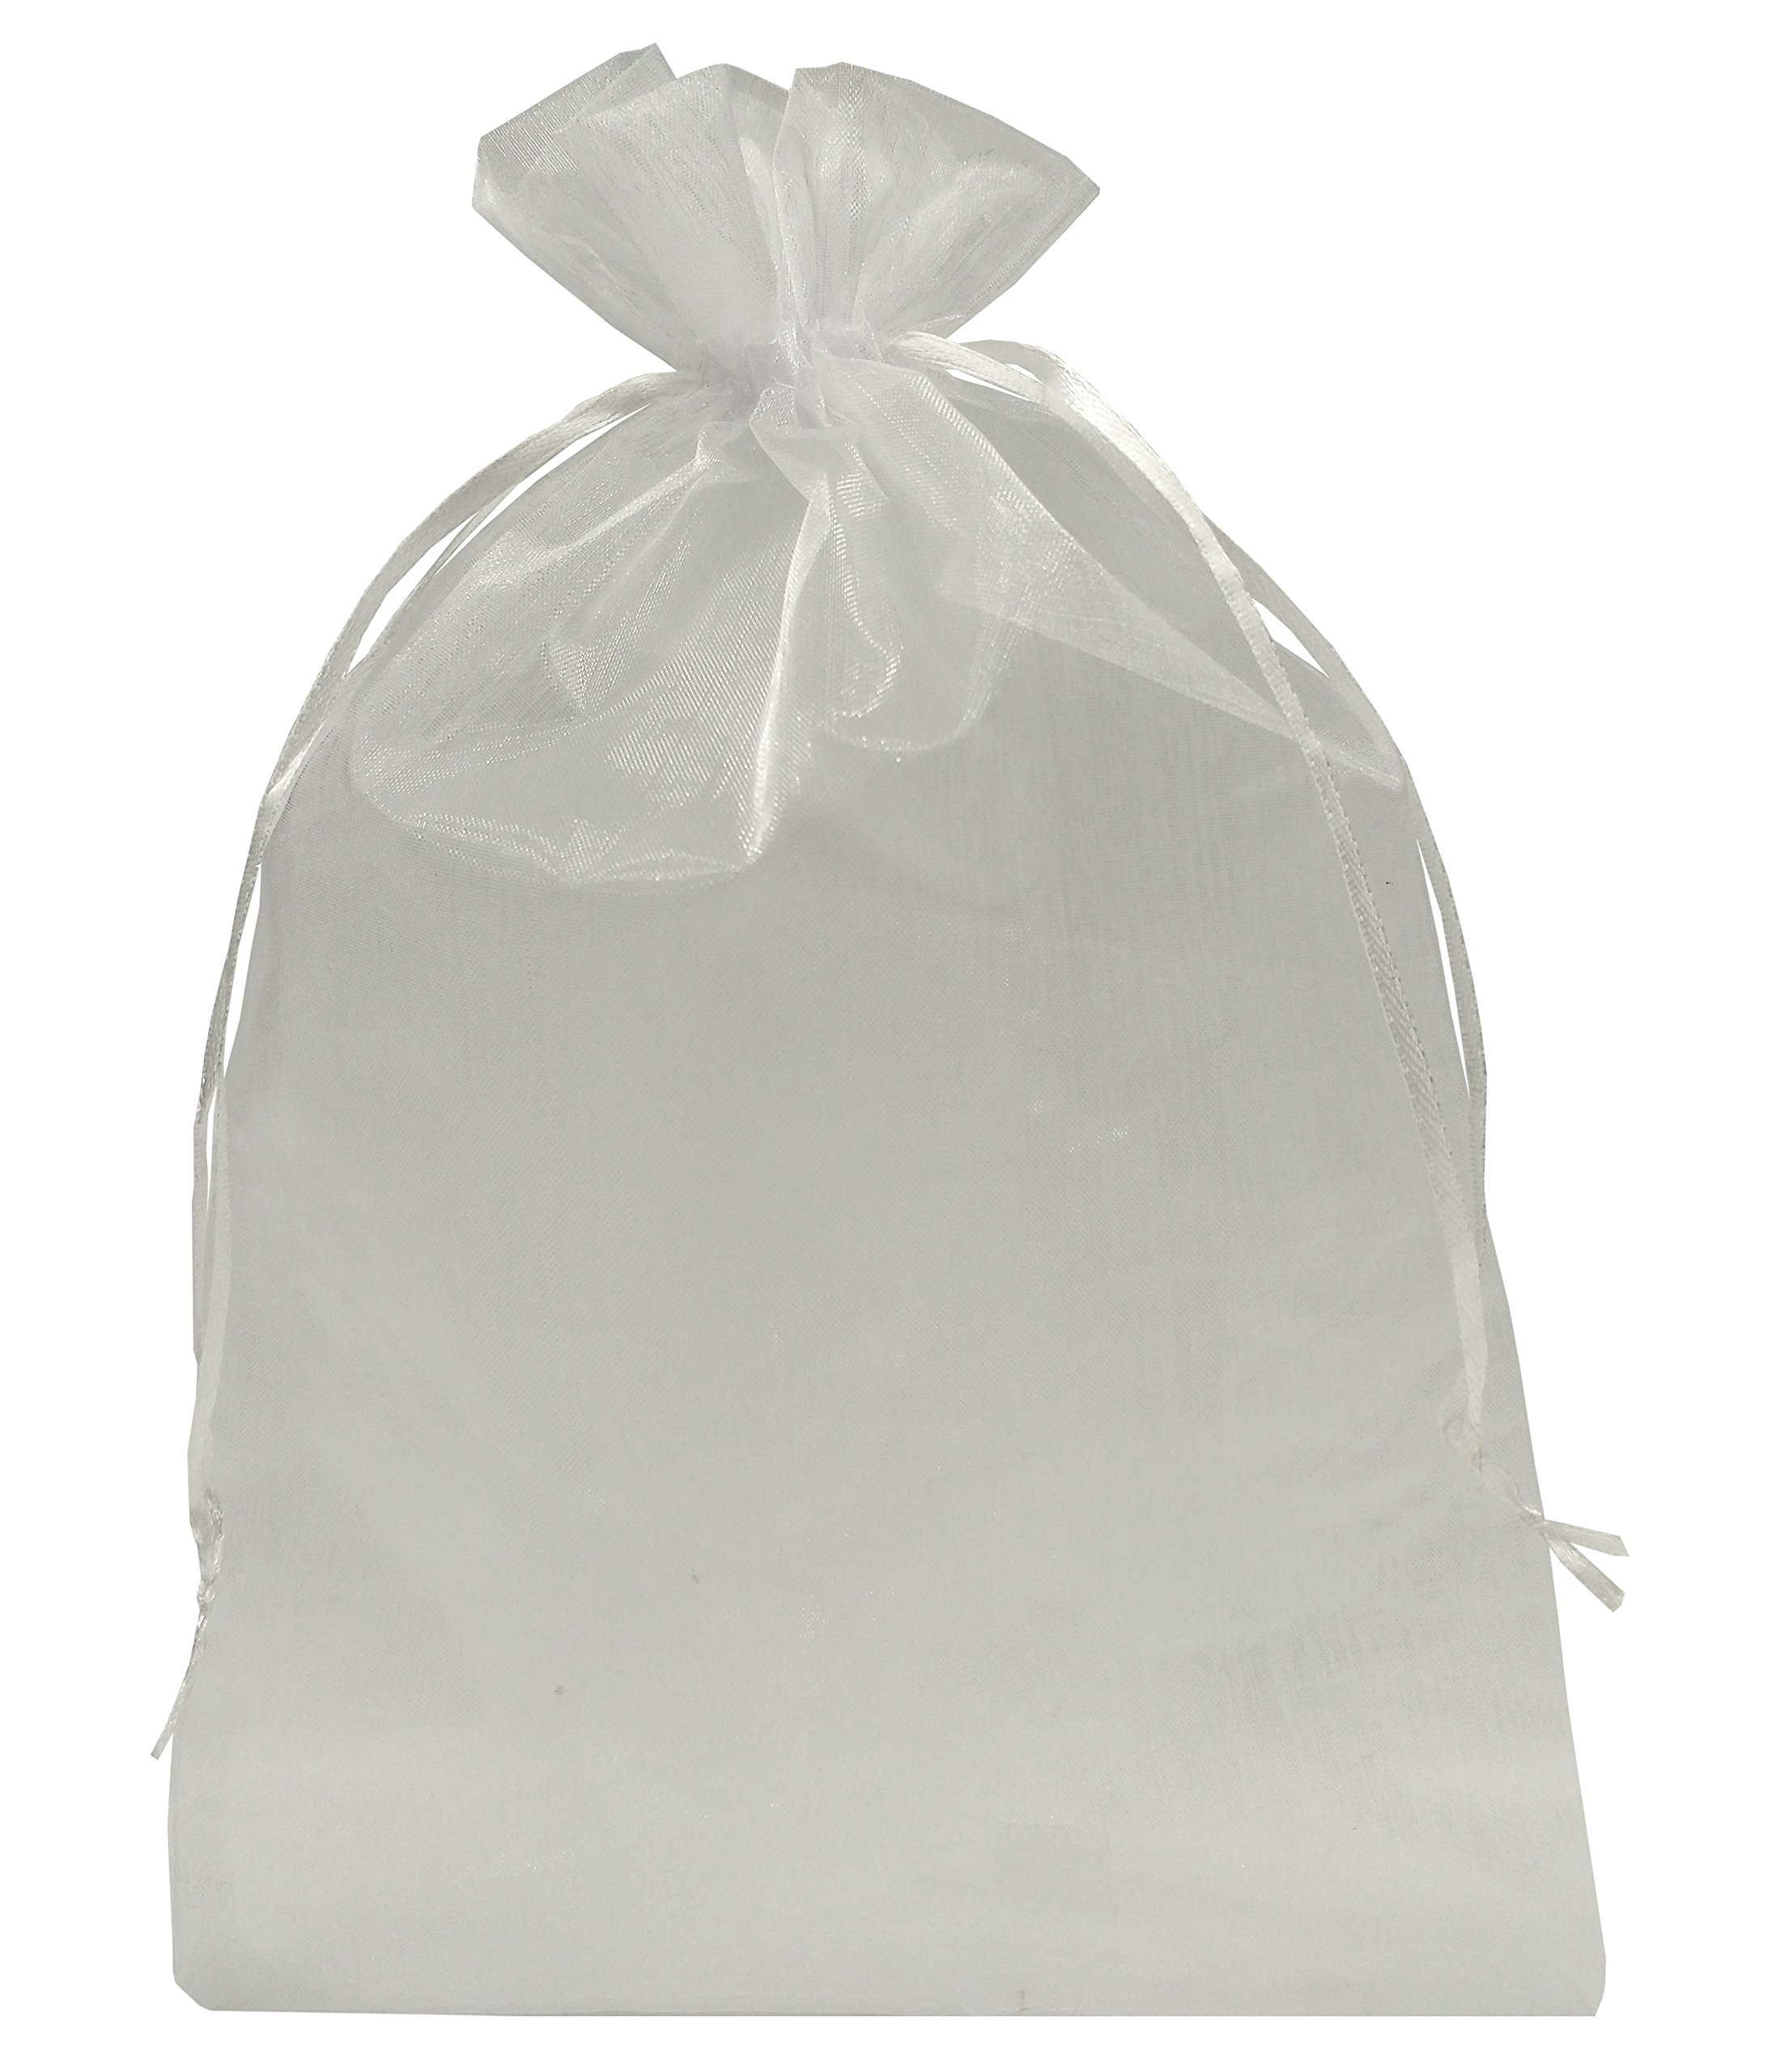 Ankirol 100pcs Sheer Organza Favor Bags 8 X 12'' Large Organza Drawstring Bags (White) by Ankirol